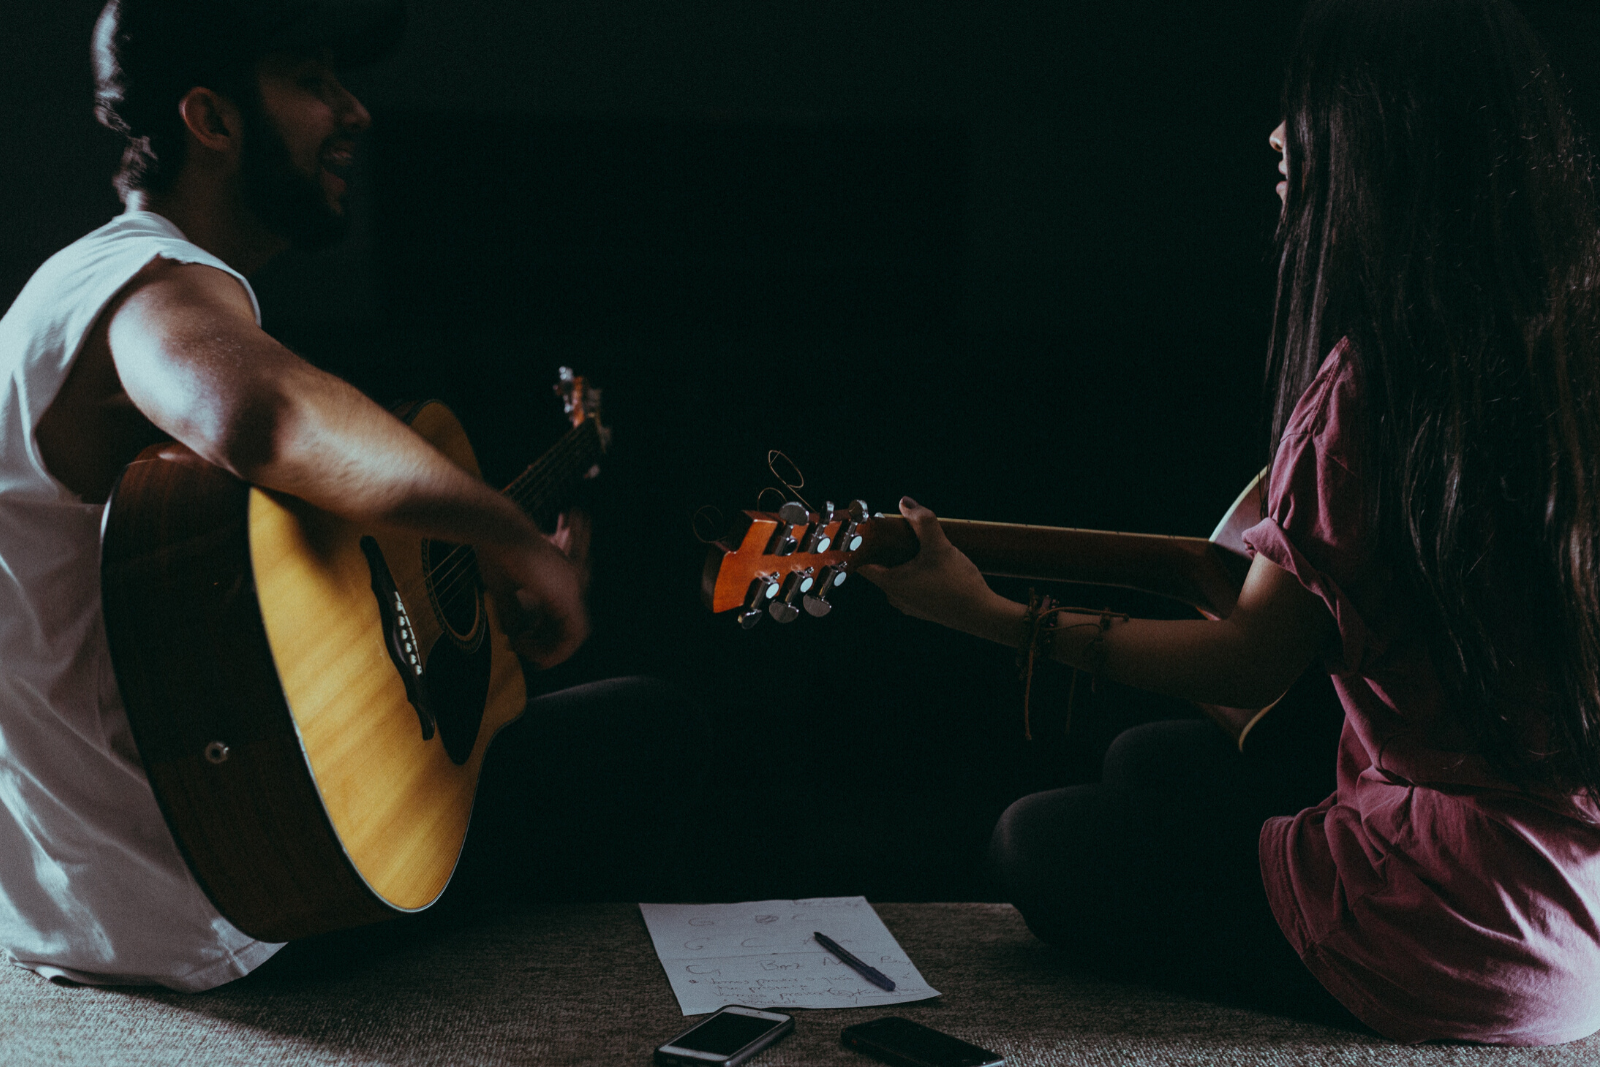 Man and Woman Playing Guitar | Buying A Guitar Online Vs. In-Store: Which Is Best For You?